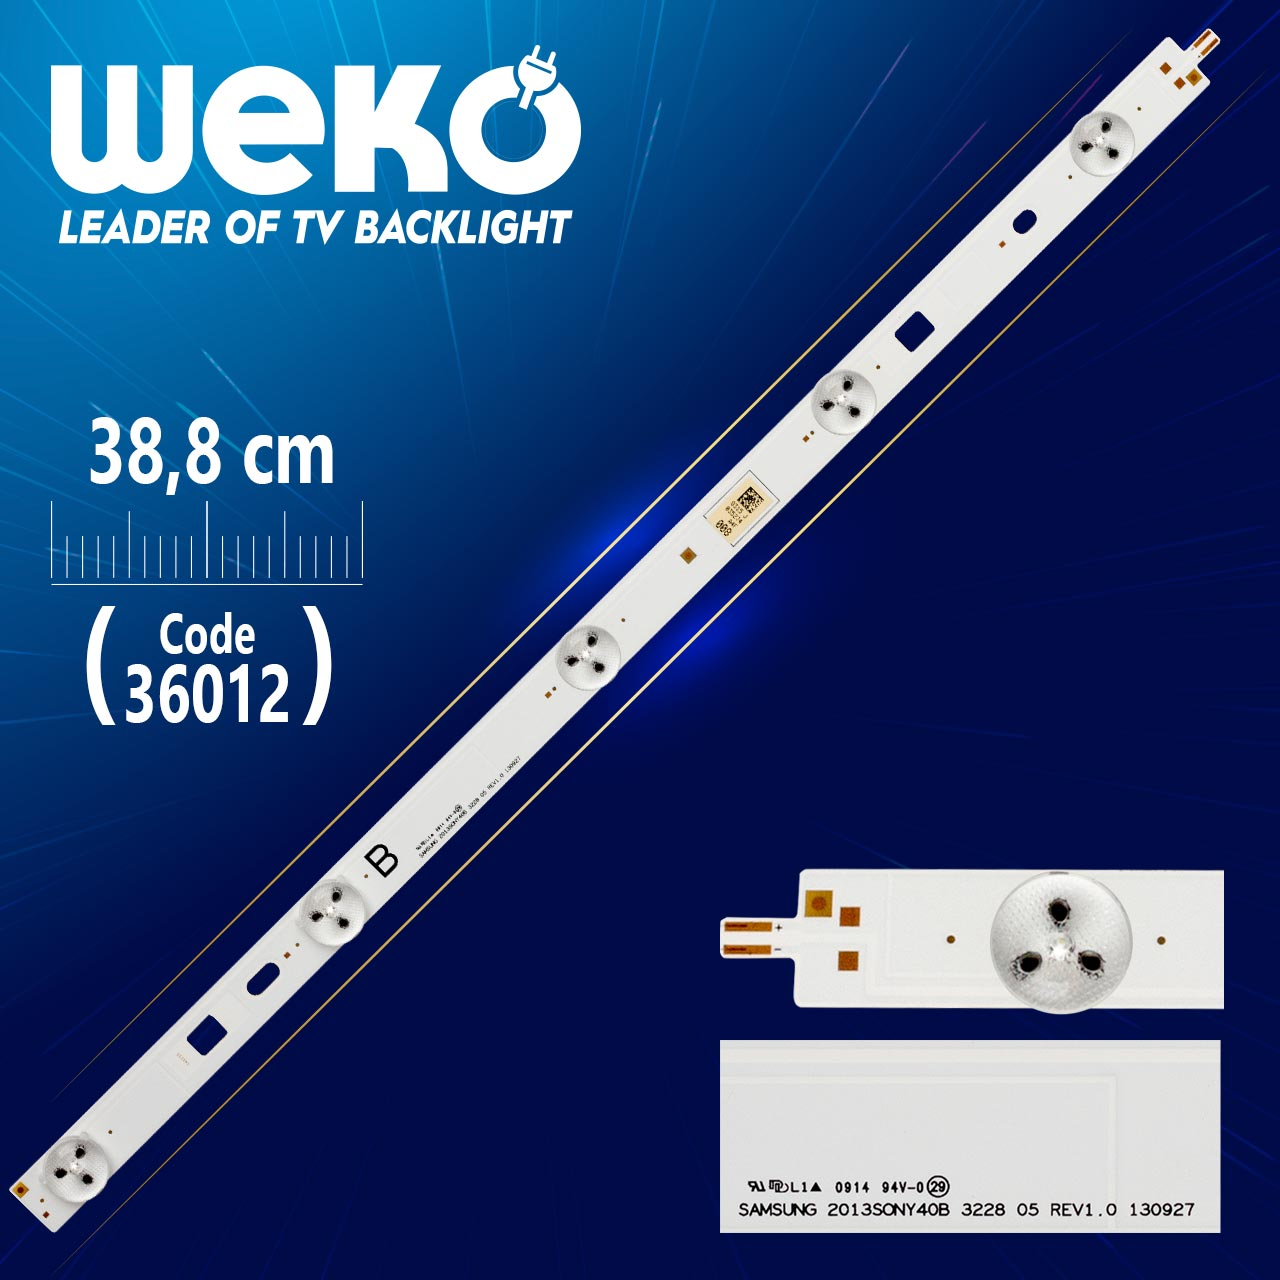 LED STRIP SONY 2013 40B3228 05 REV1.0A B-TYPE LED STRIP SONY  2013SONY40A 3228  05 REV1.0A B-TYPE